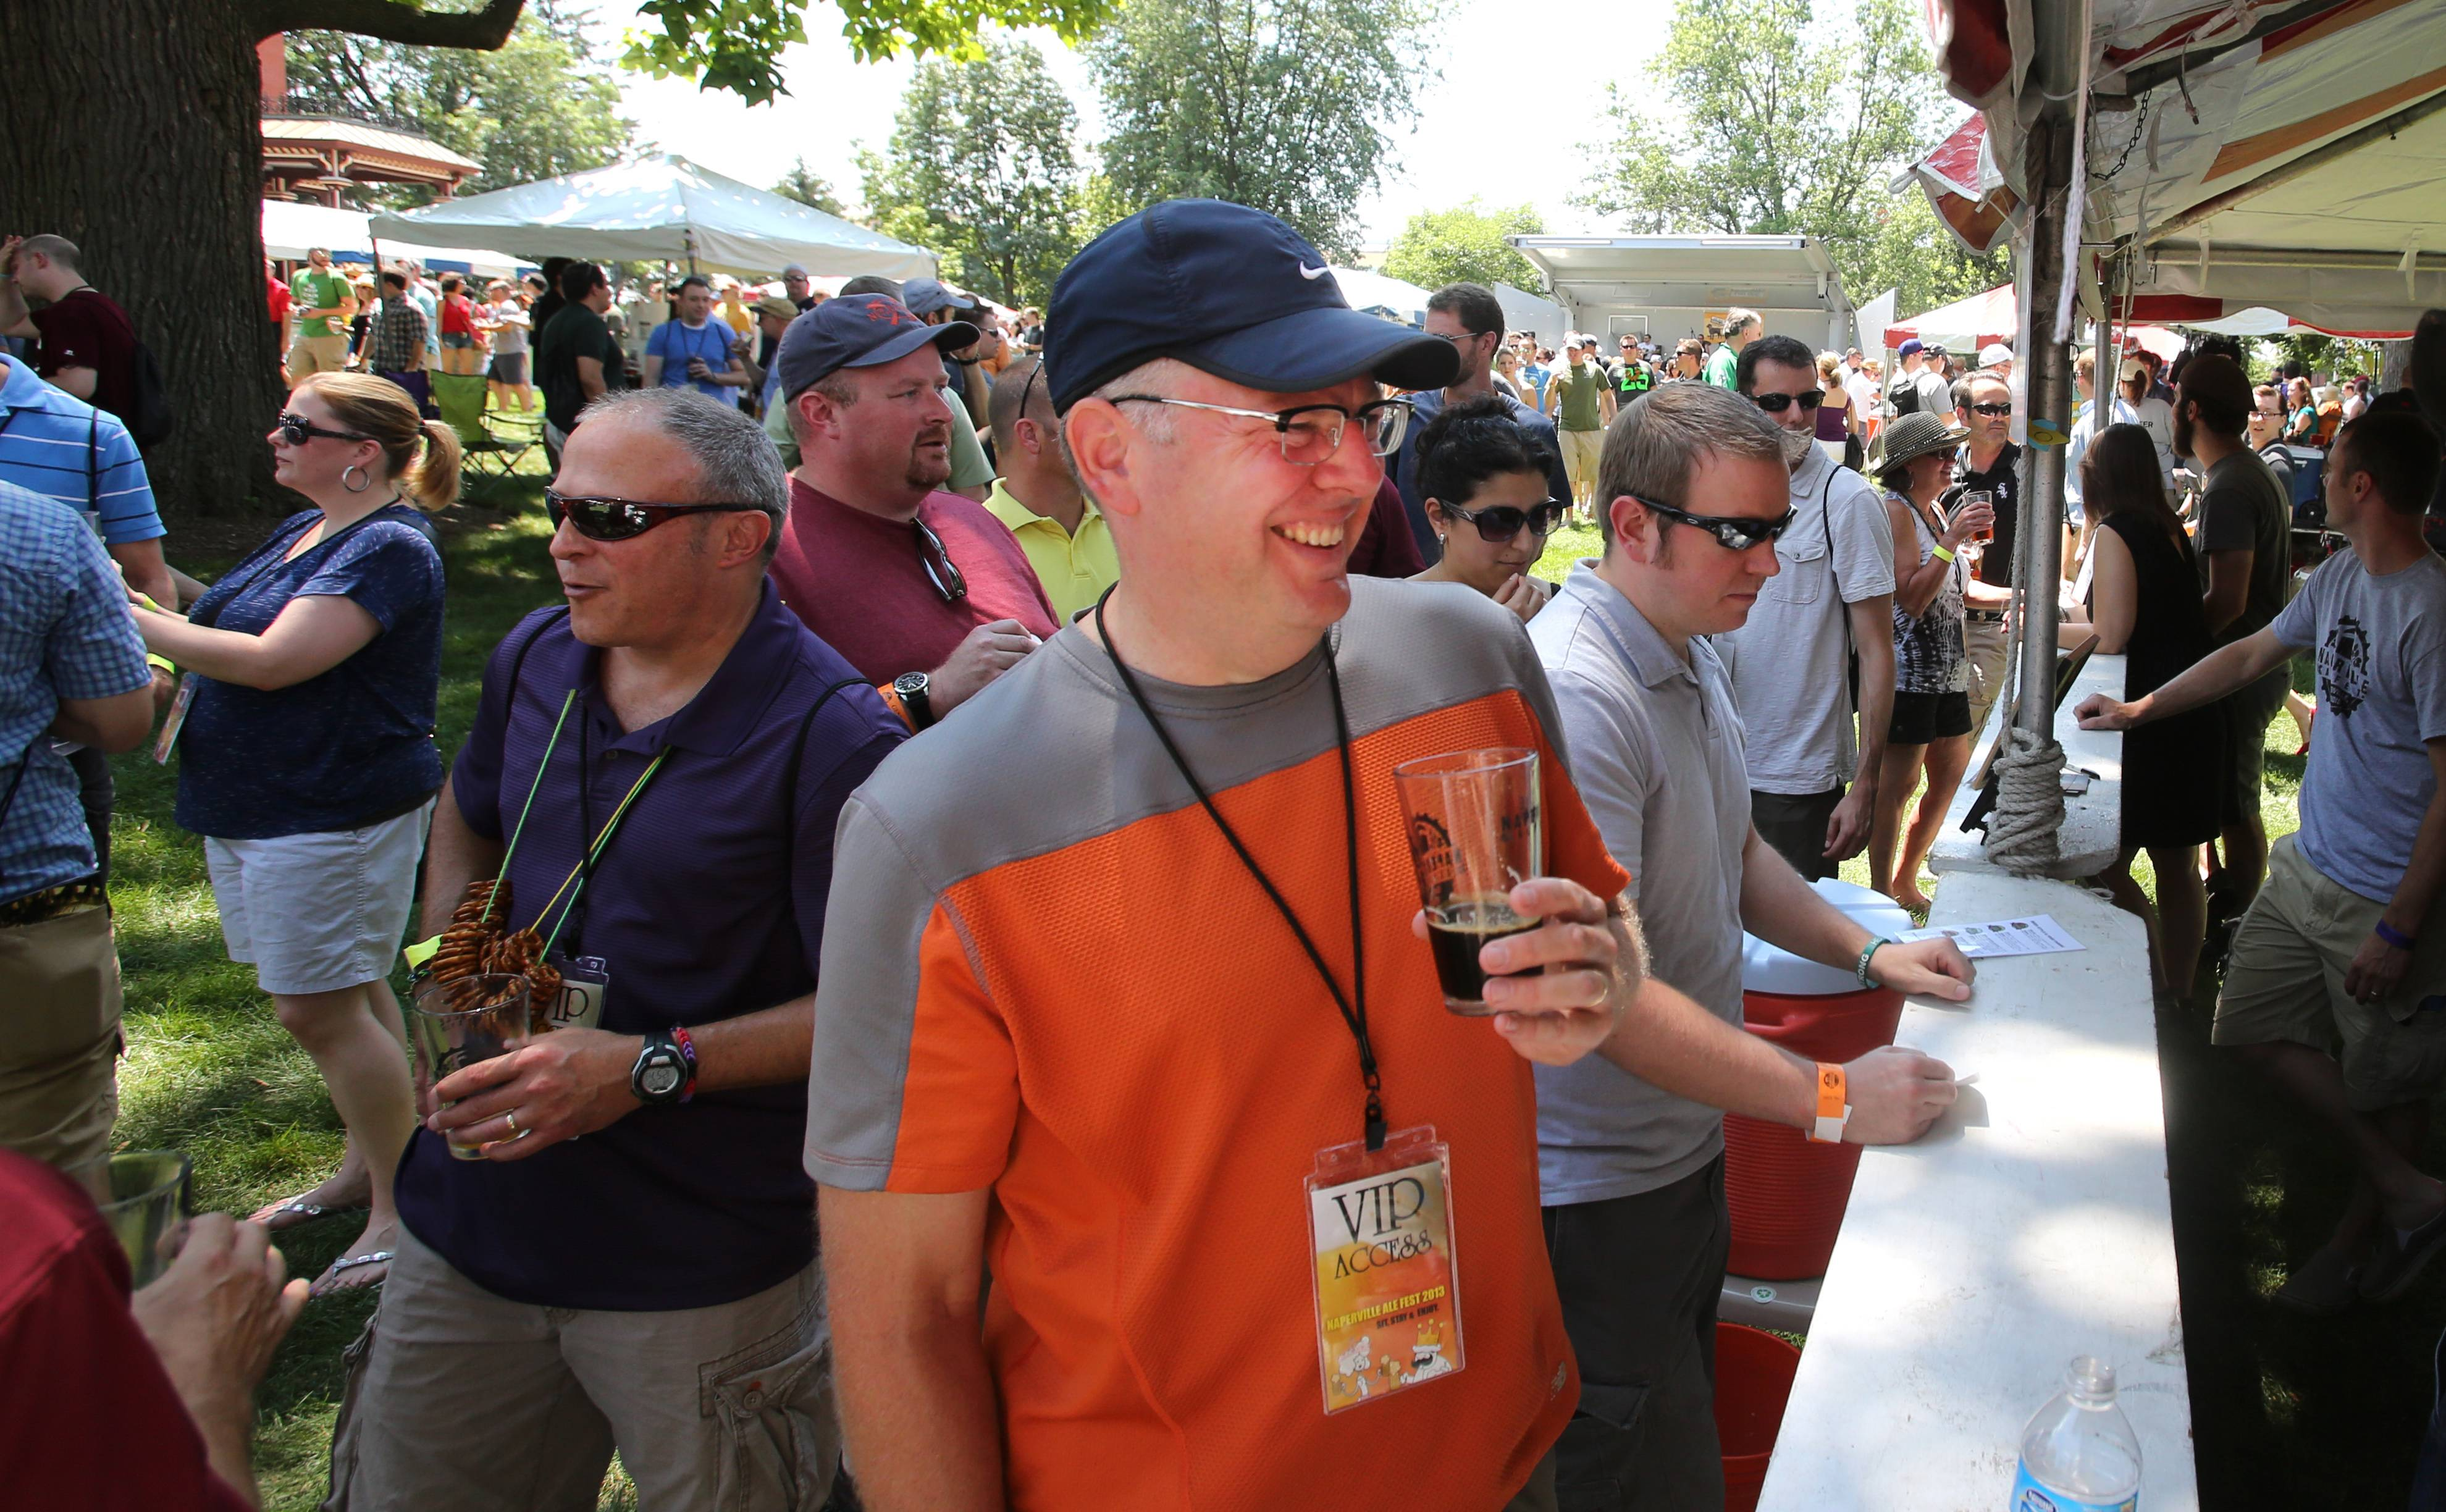 Anybody can hold an outdoor Ale Fest in summer, but pulling one off outside in the dead of winter can be more challenging. That's not stopping organizers of the first Naperville Winter Ale Fest, who hope to attract 3,000 people later this month to Frontier Park on the city's south side.